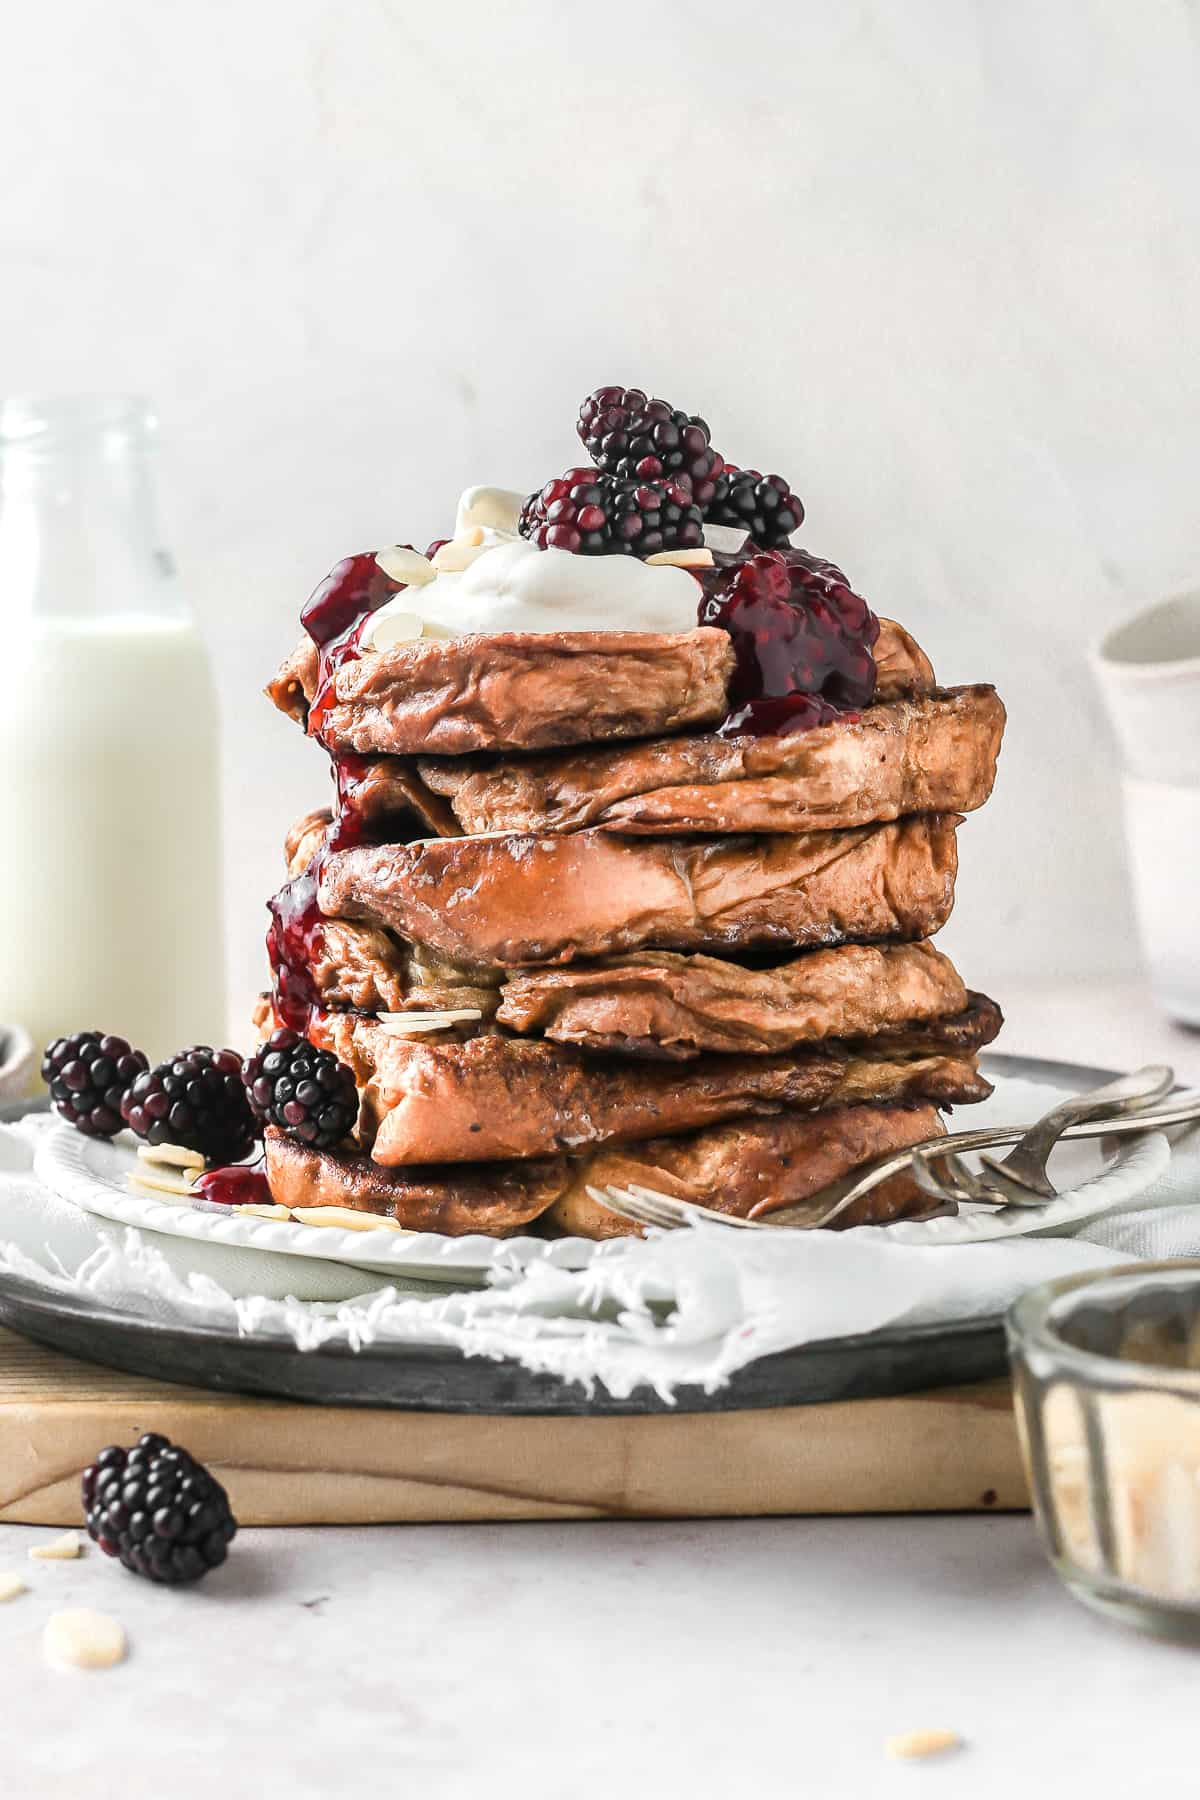 Brioche French Toast infused with Earl Grey and stacked on a plate